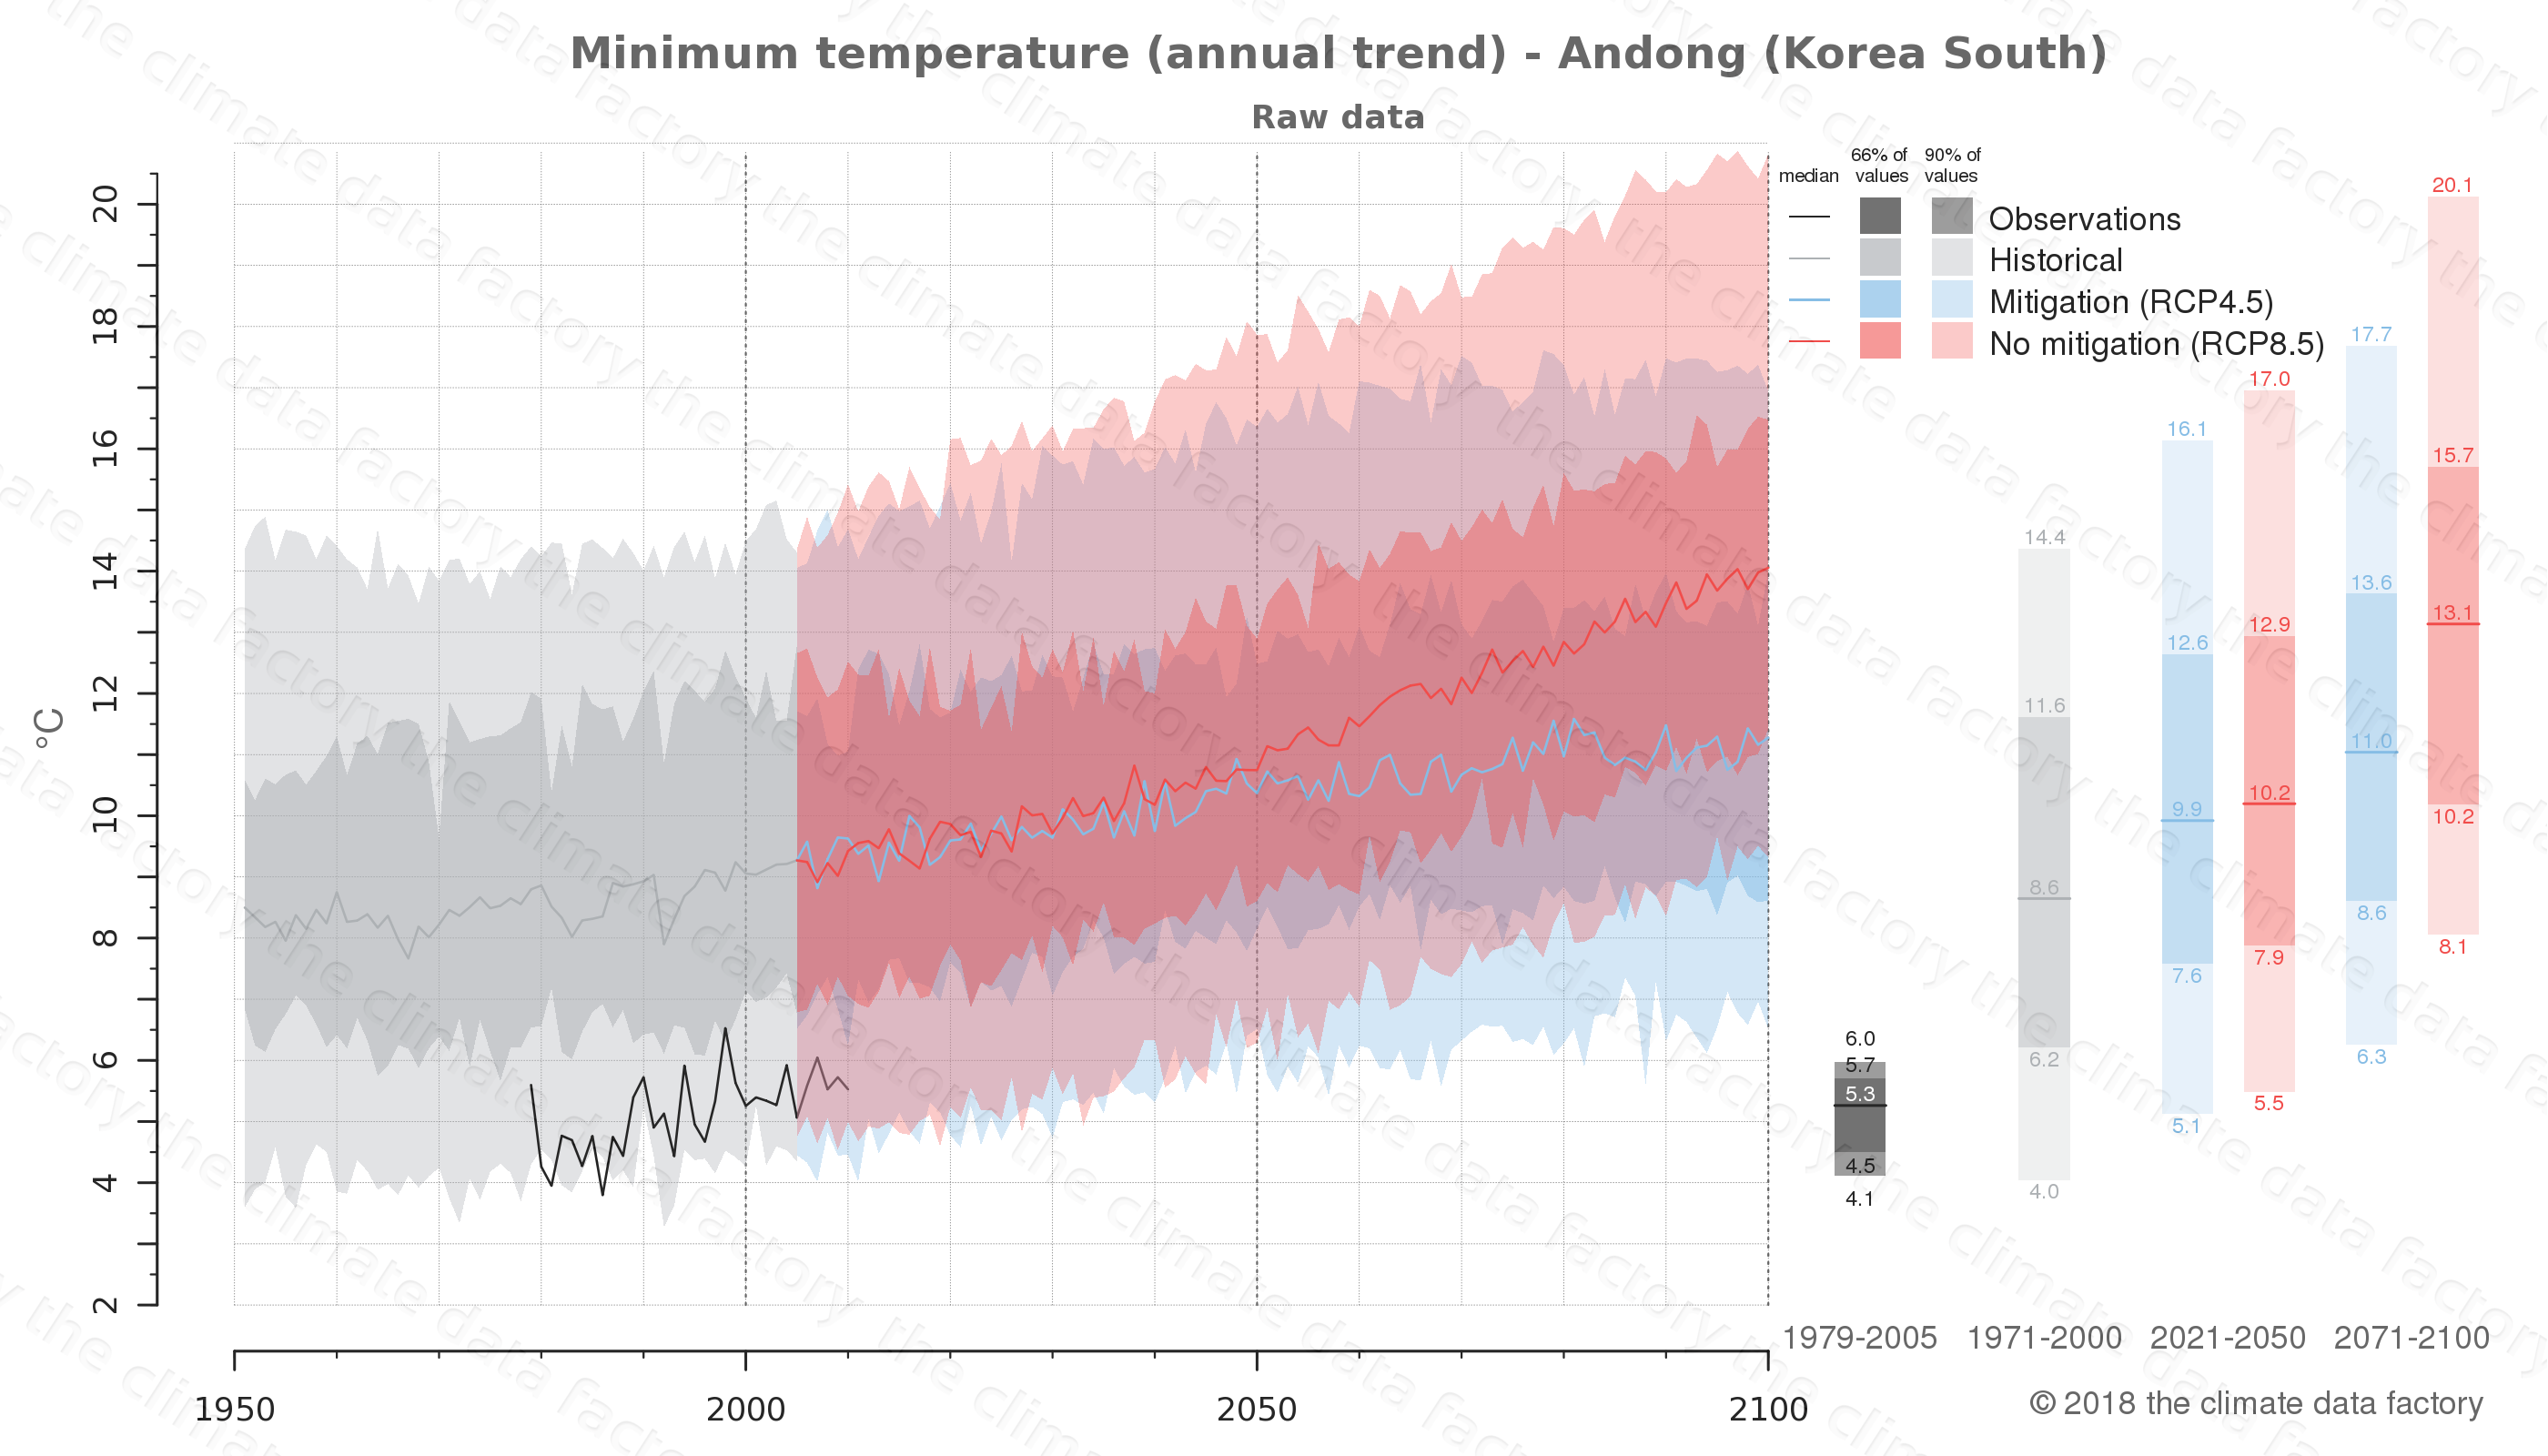 climate change data policy adaptation climate graph city data minimum-temperature andong south korea